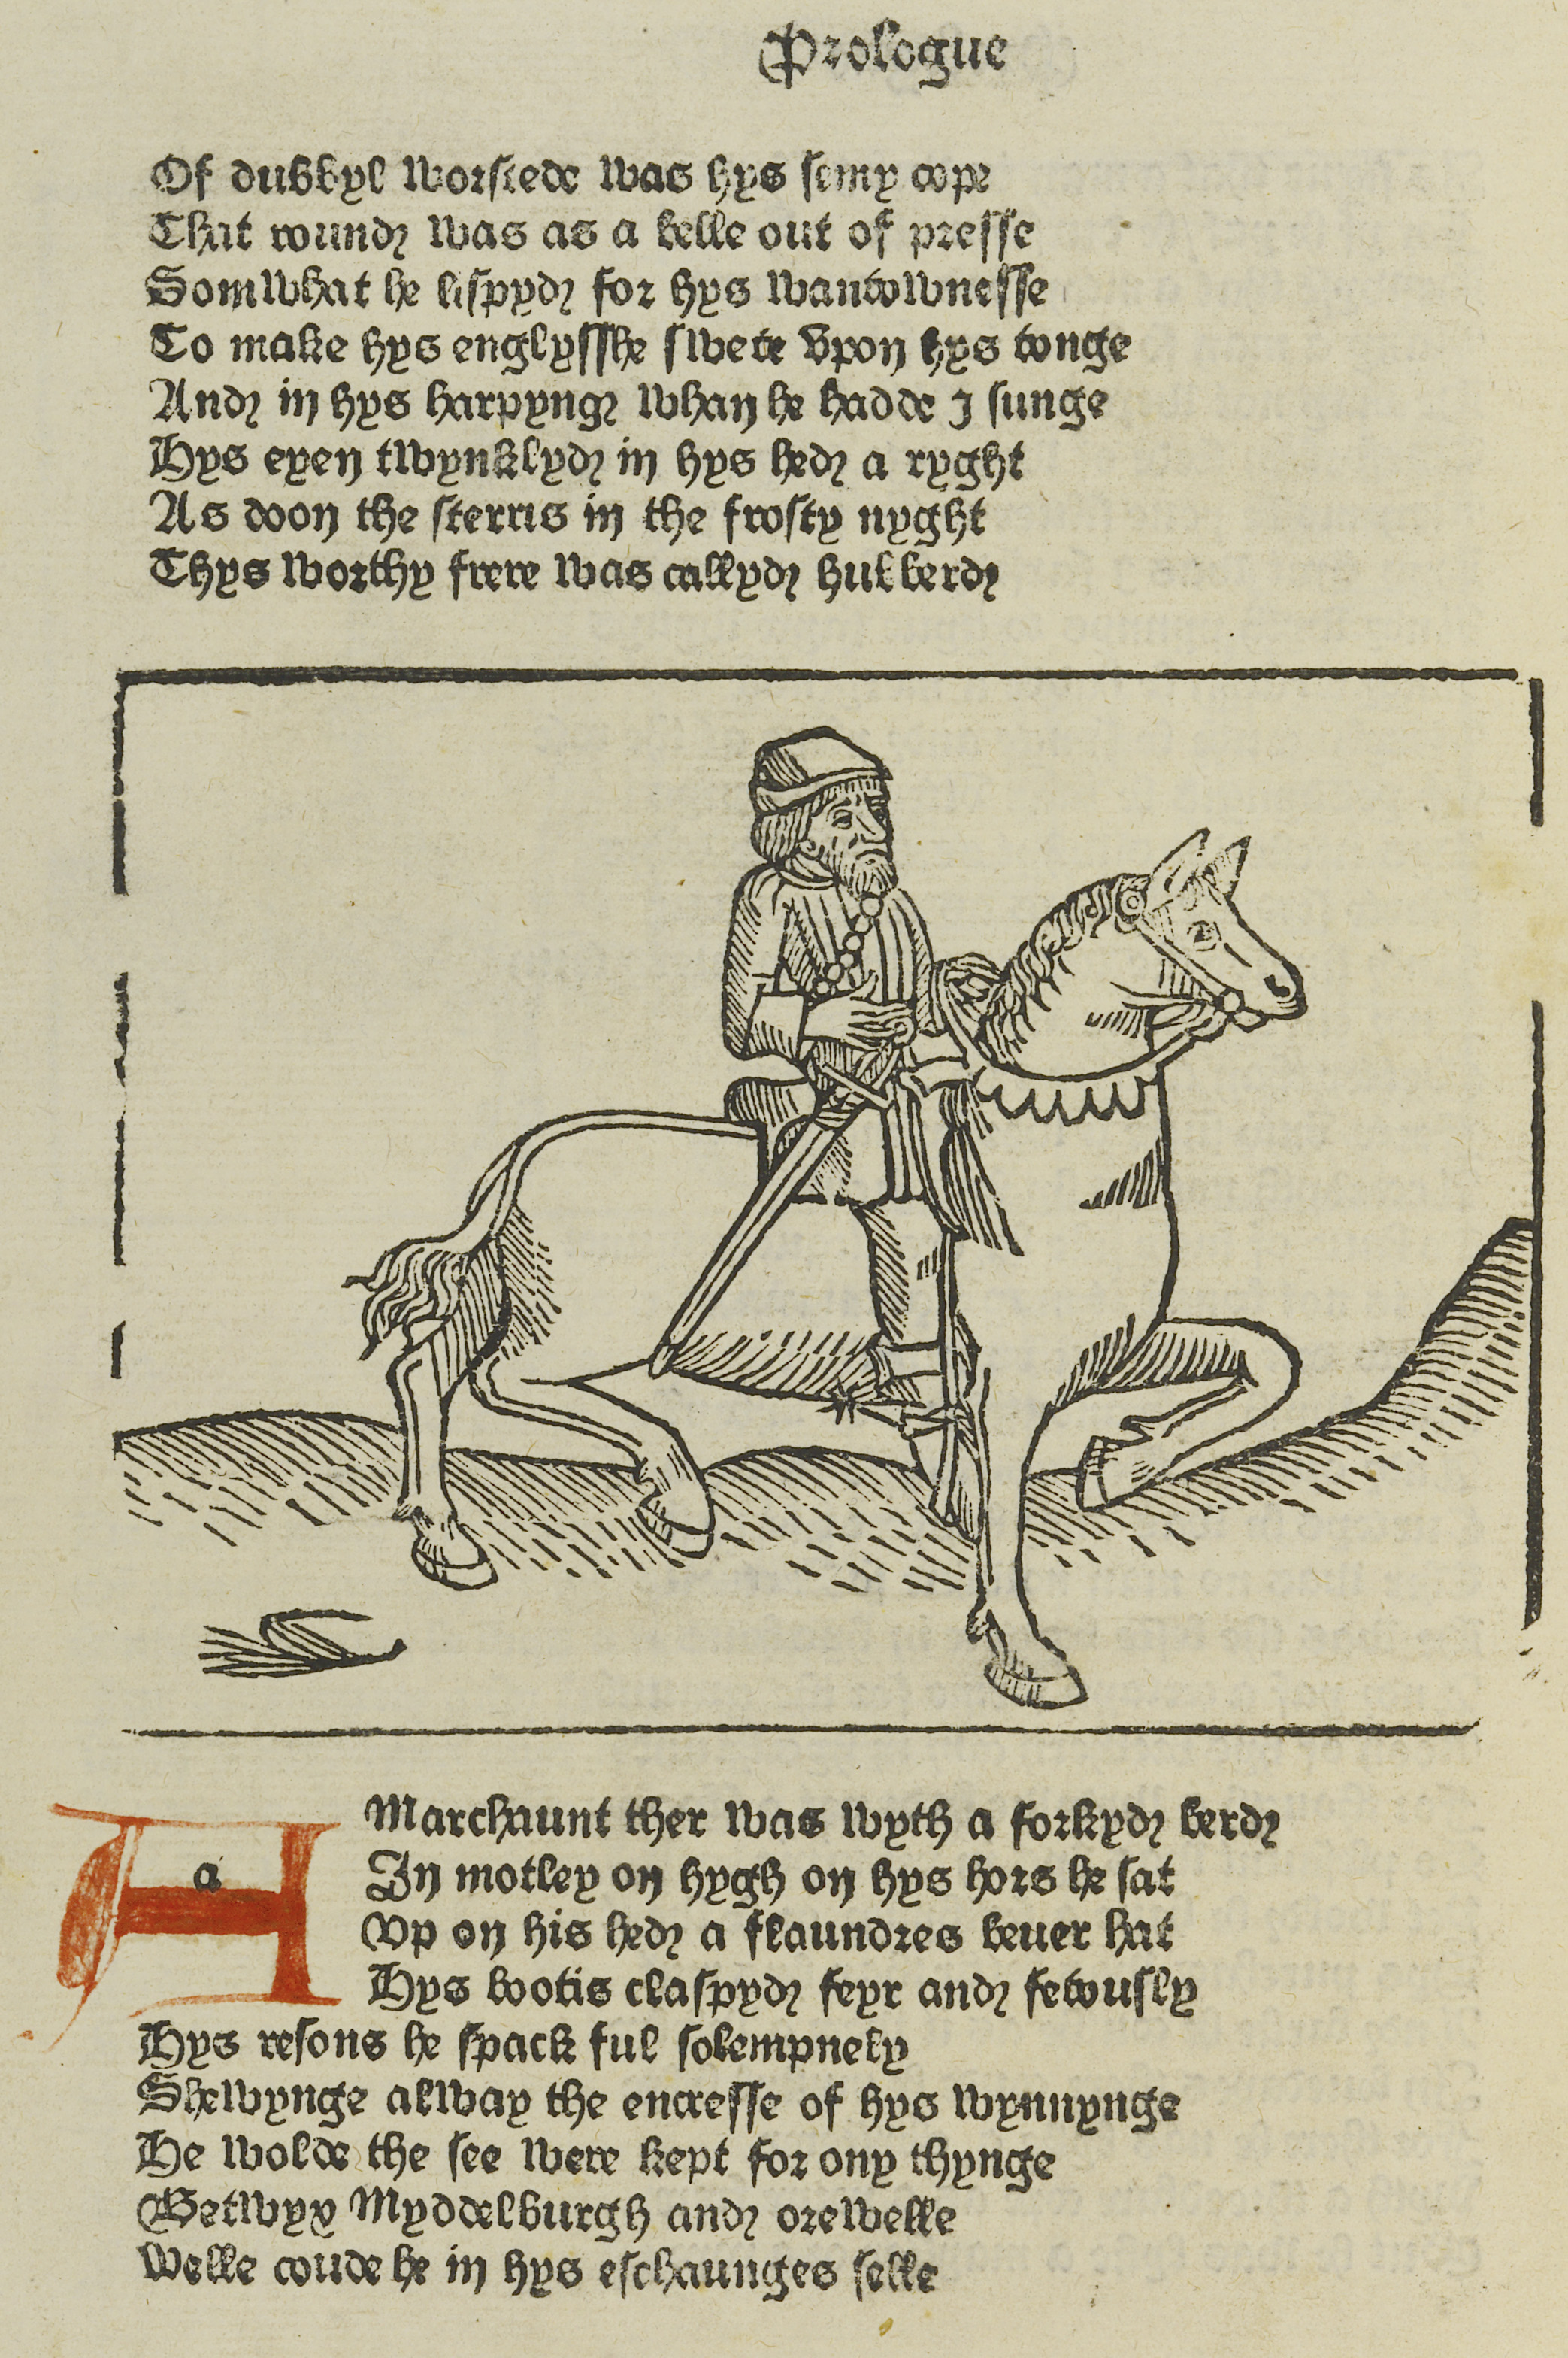 Anti-Semitism in Medieval England: Analyzing Chaucer's